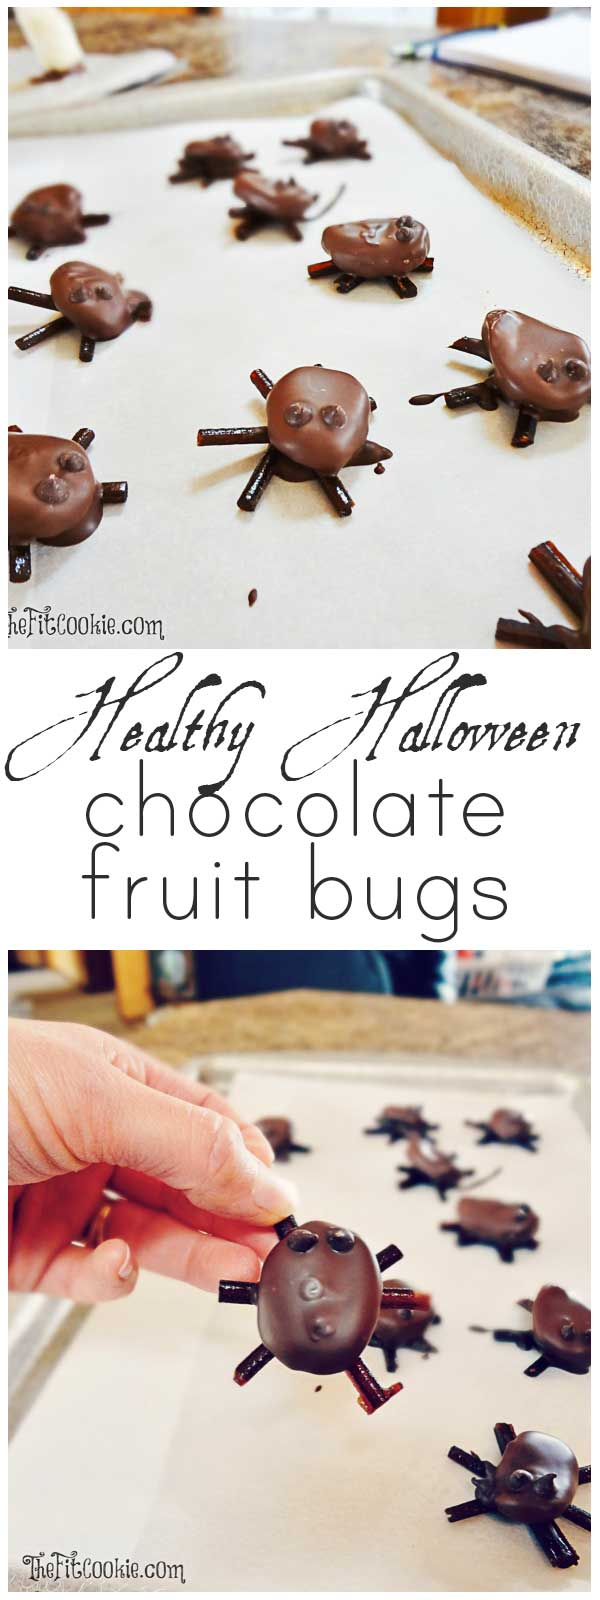 "Make up your own healthy halloween candy with these fun treats that are also allergy friendly! These Chocolate Fruit ""Bugs"" are gluten free, peanut free, vegan, and easy to make! - @TheFitCookie #Halloween #dairyfree #glutenfree"